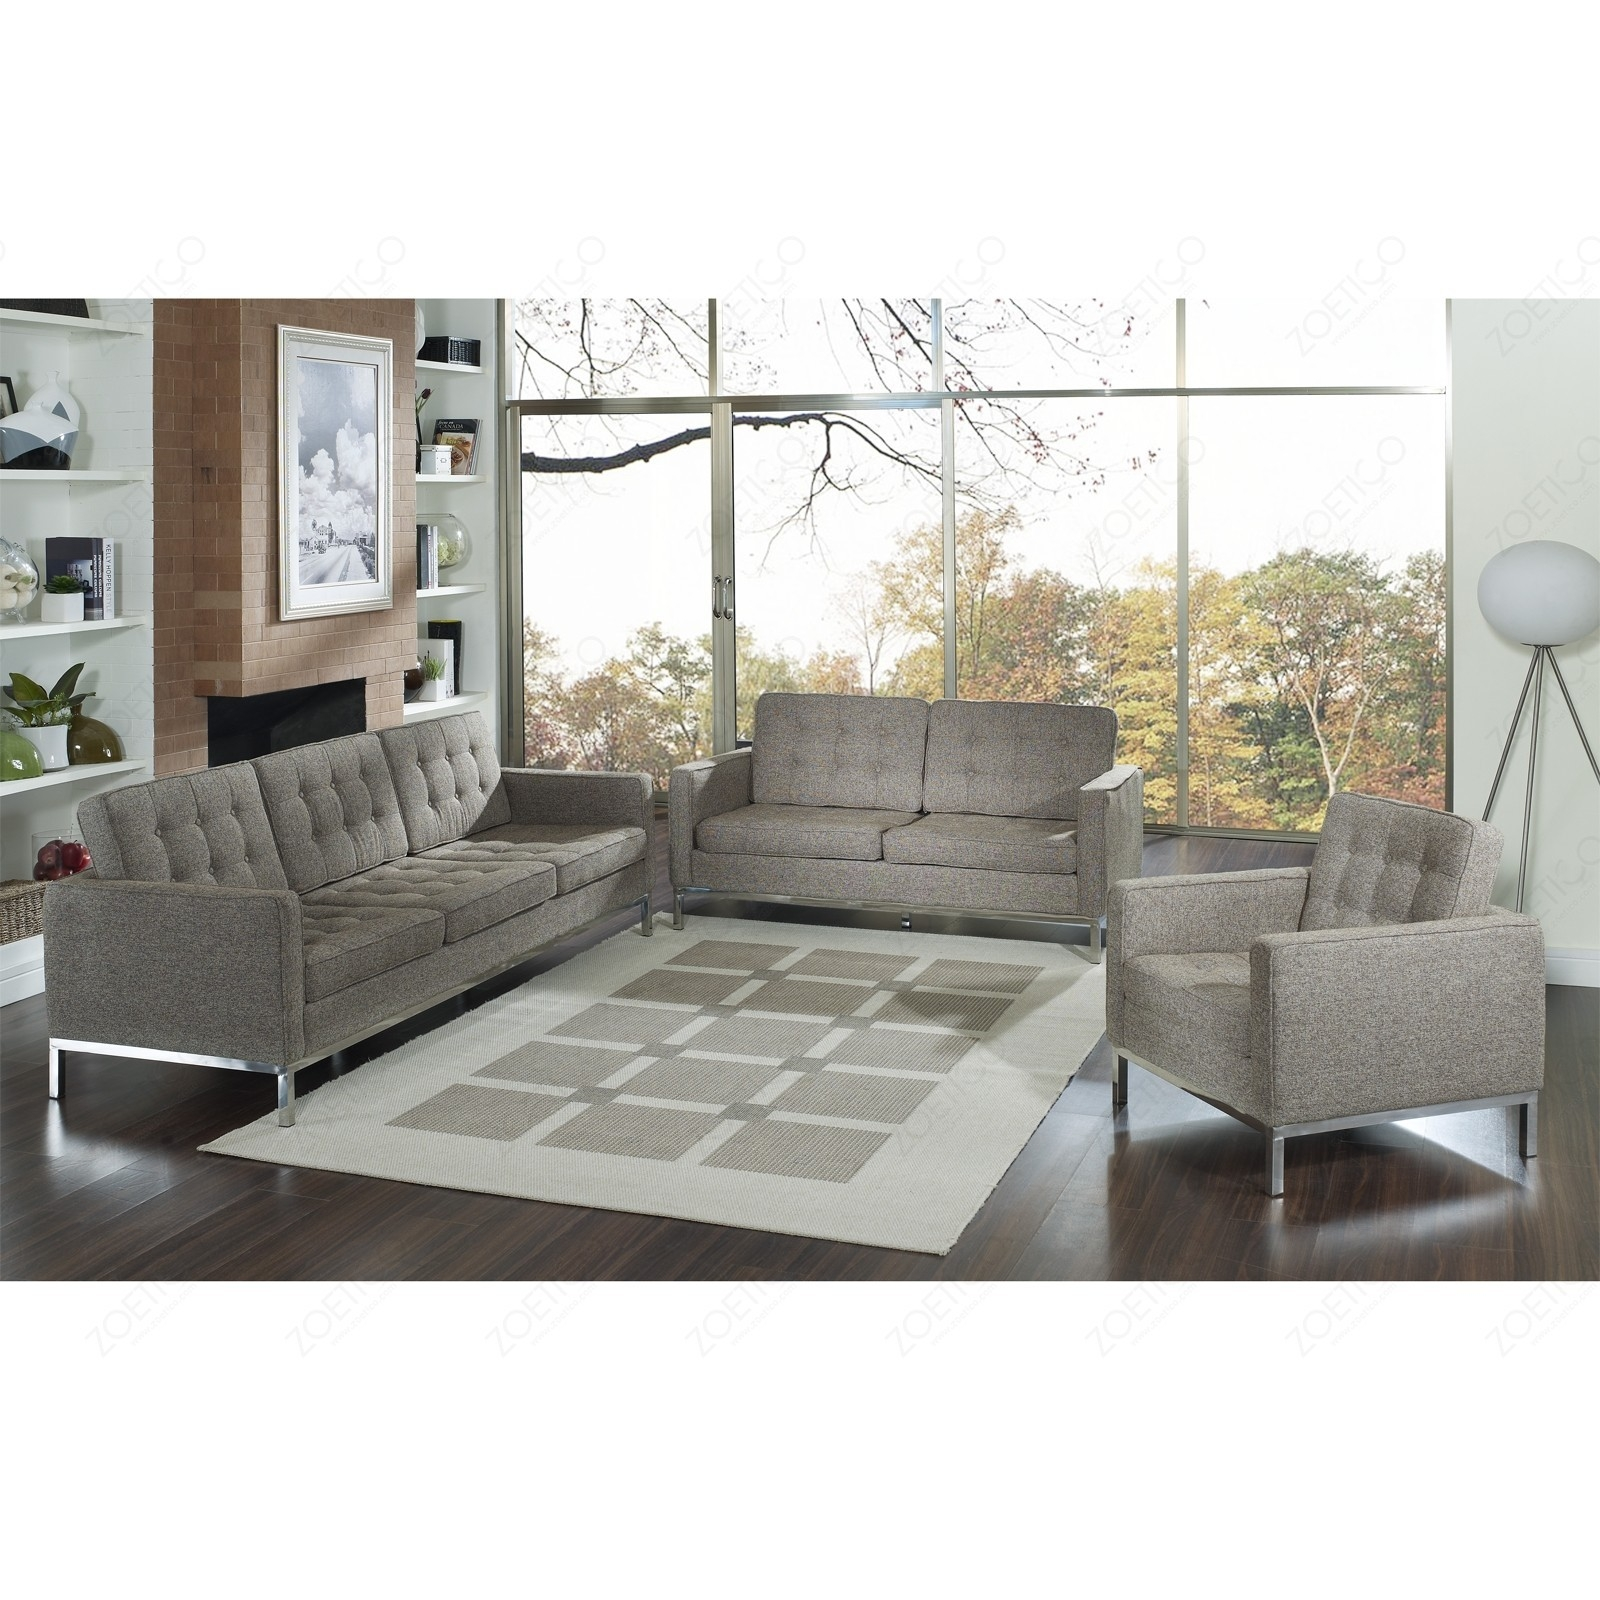 Sofas Center Florence Knoll Sofa Comfort Reproduction Reviews Regarding Florence Knoll Fabric Sofas (Image 12 of 15)